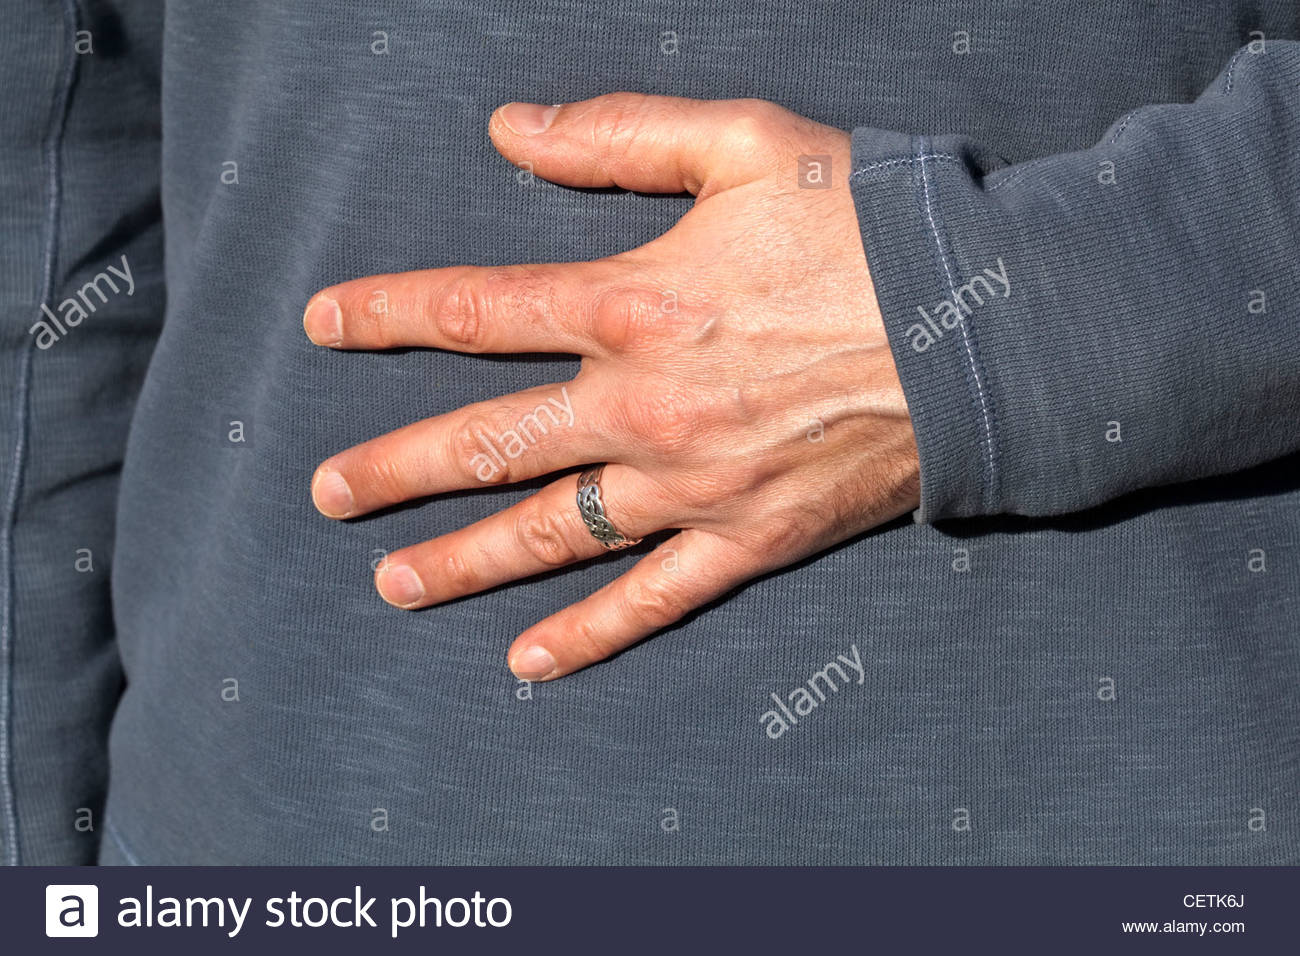 Mans hand wearing silver wedding ring on finger Stock Photo